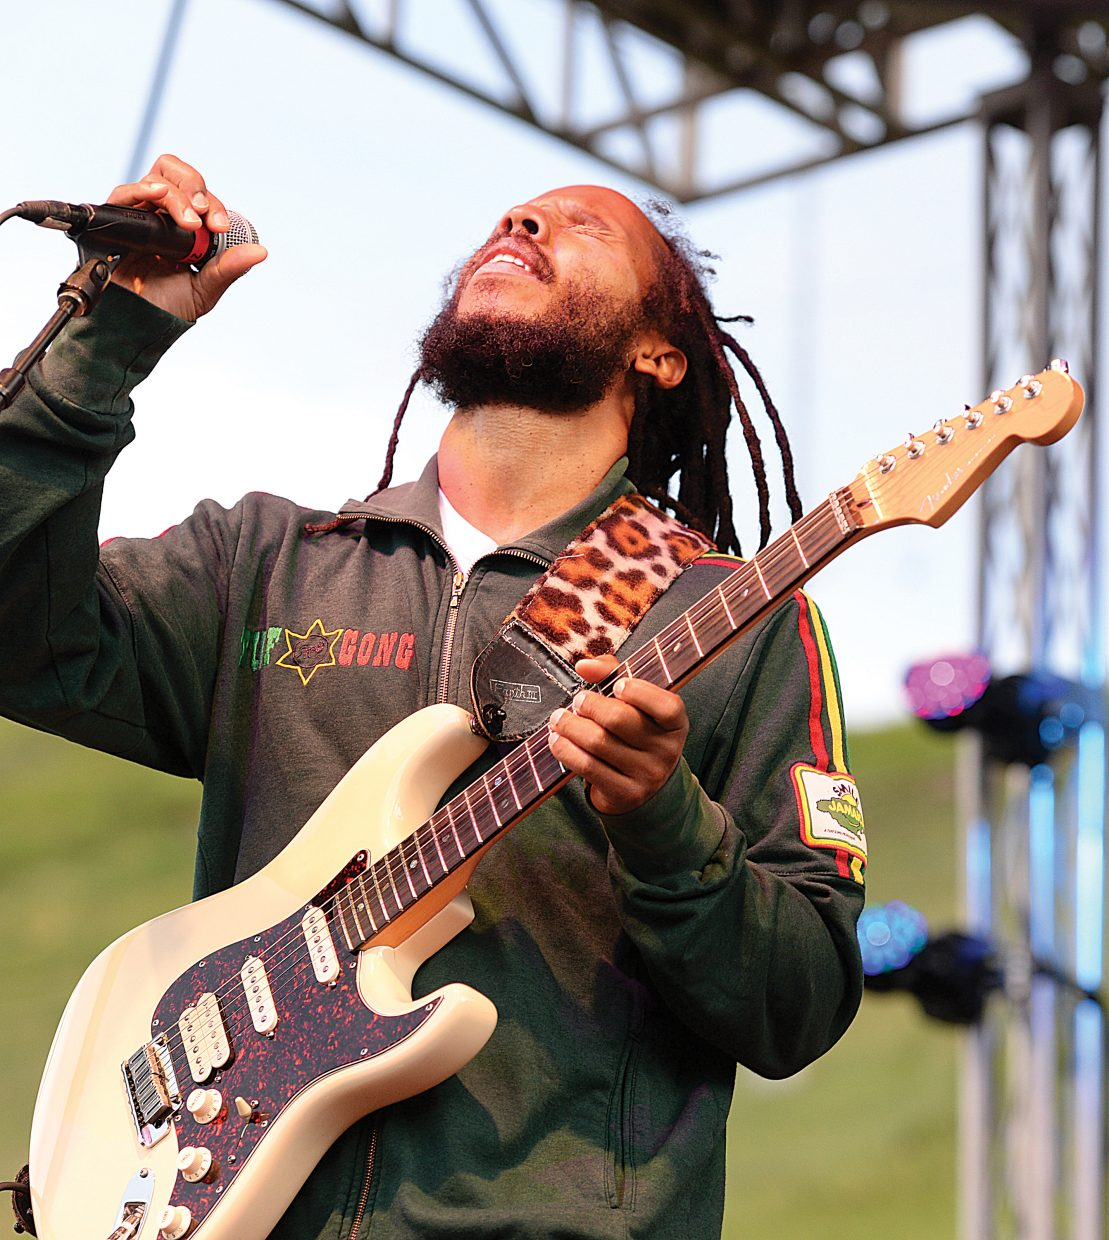 Singer, songwriter and producer Ziggy Marley performs at Howelsen Hill on Wednesday evening. Thousands of people packed the base of Howelsen Hill for the free concert series event.